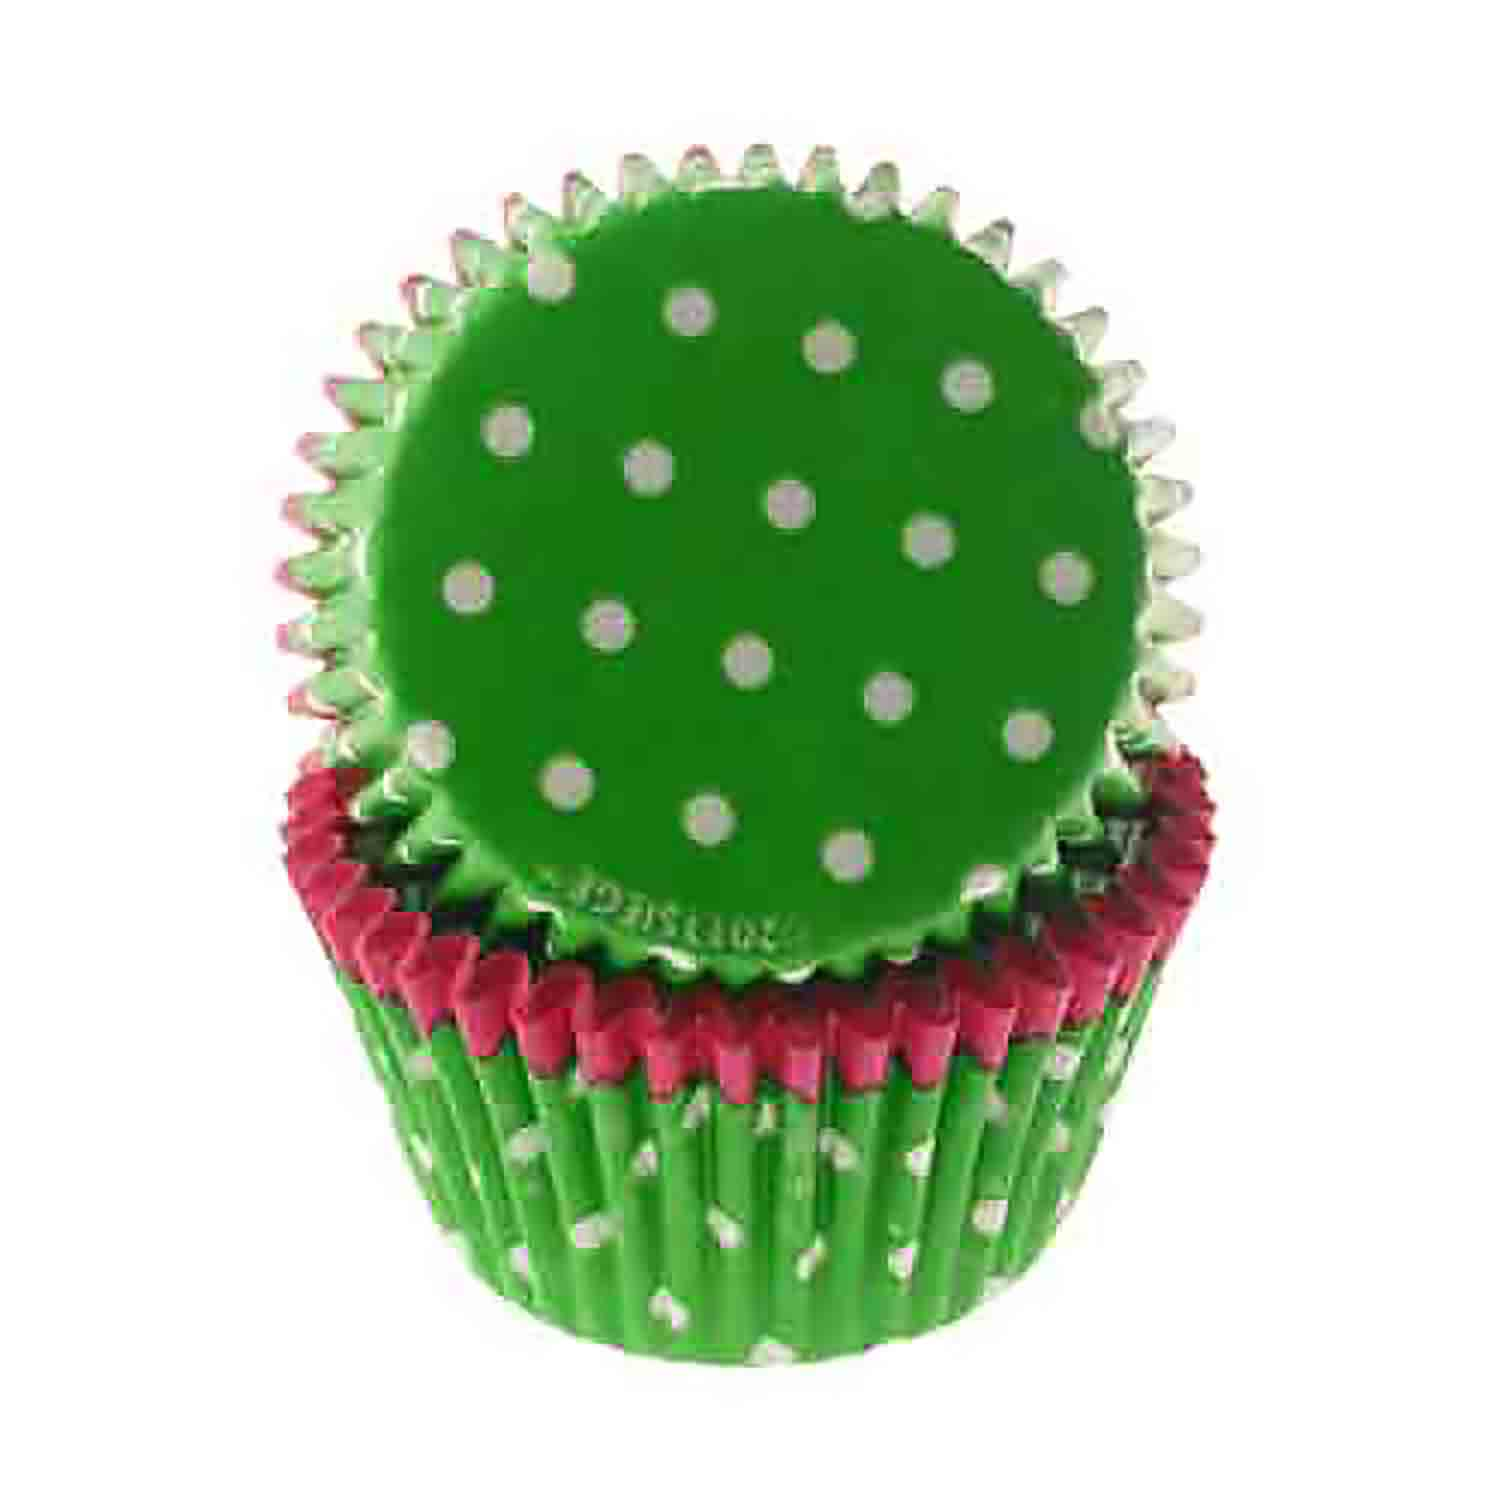 Pink Trim, Lime Green w/ White Dots Standard Baking Cups